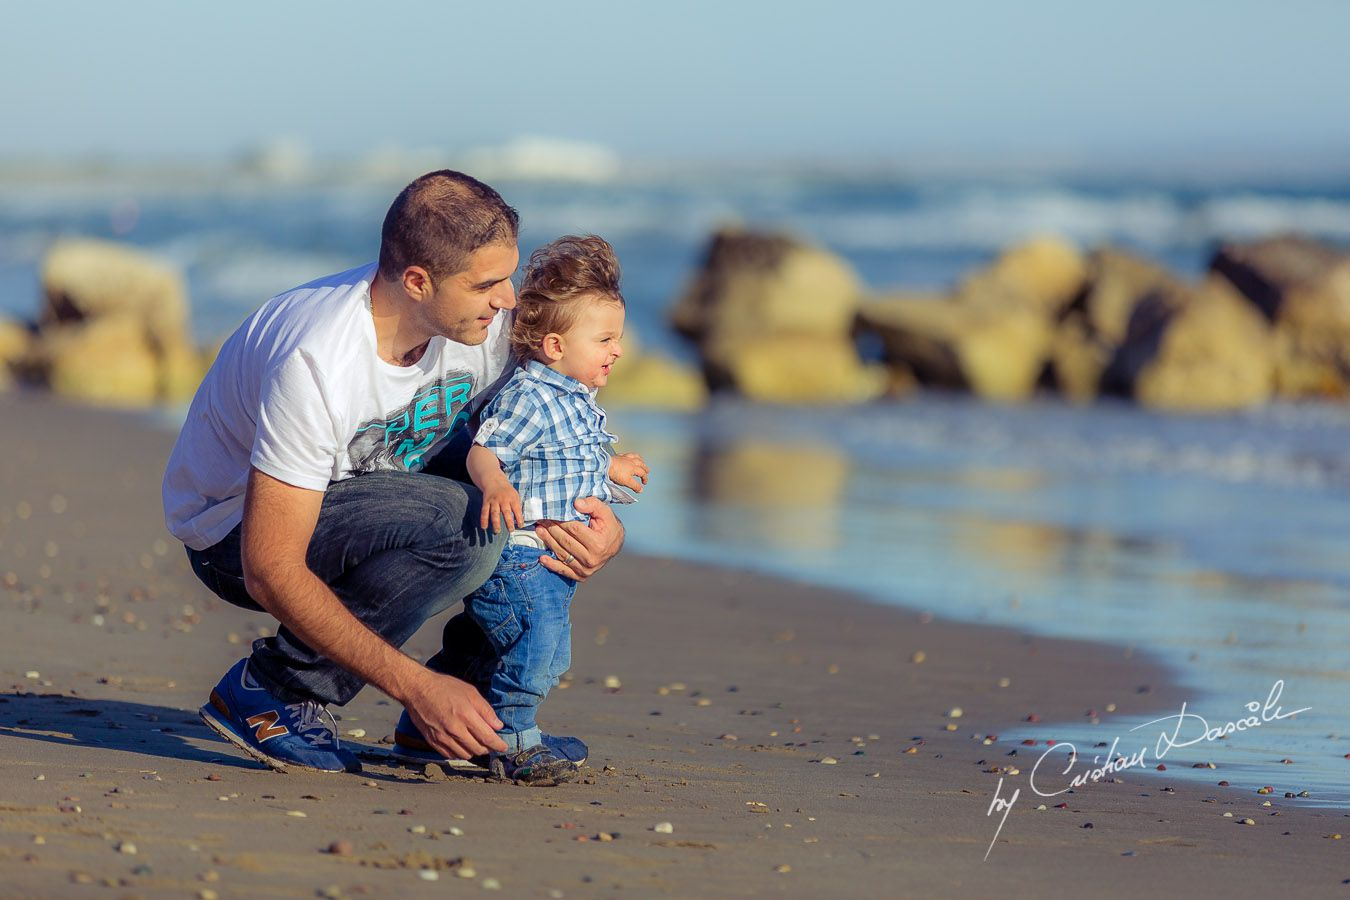 Precious moments: George & Harry at Curium Beach, Cyprus. Photographer: Cristian Dascalu